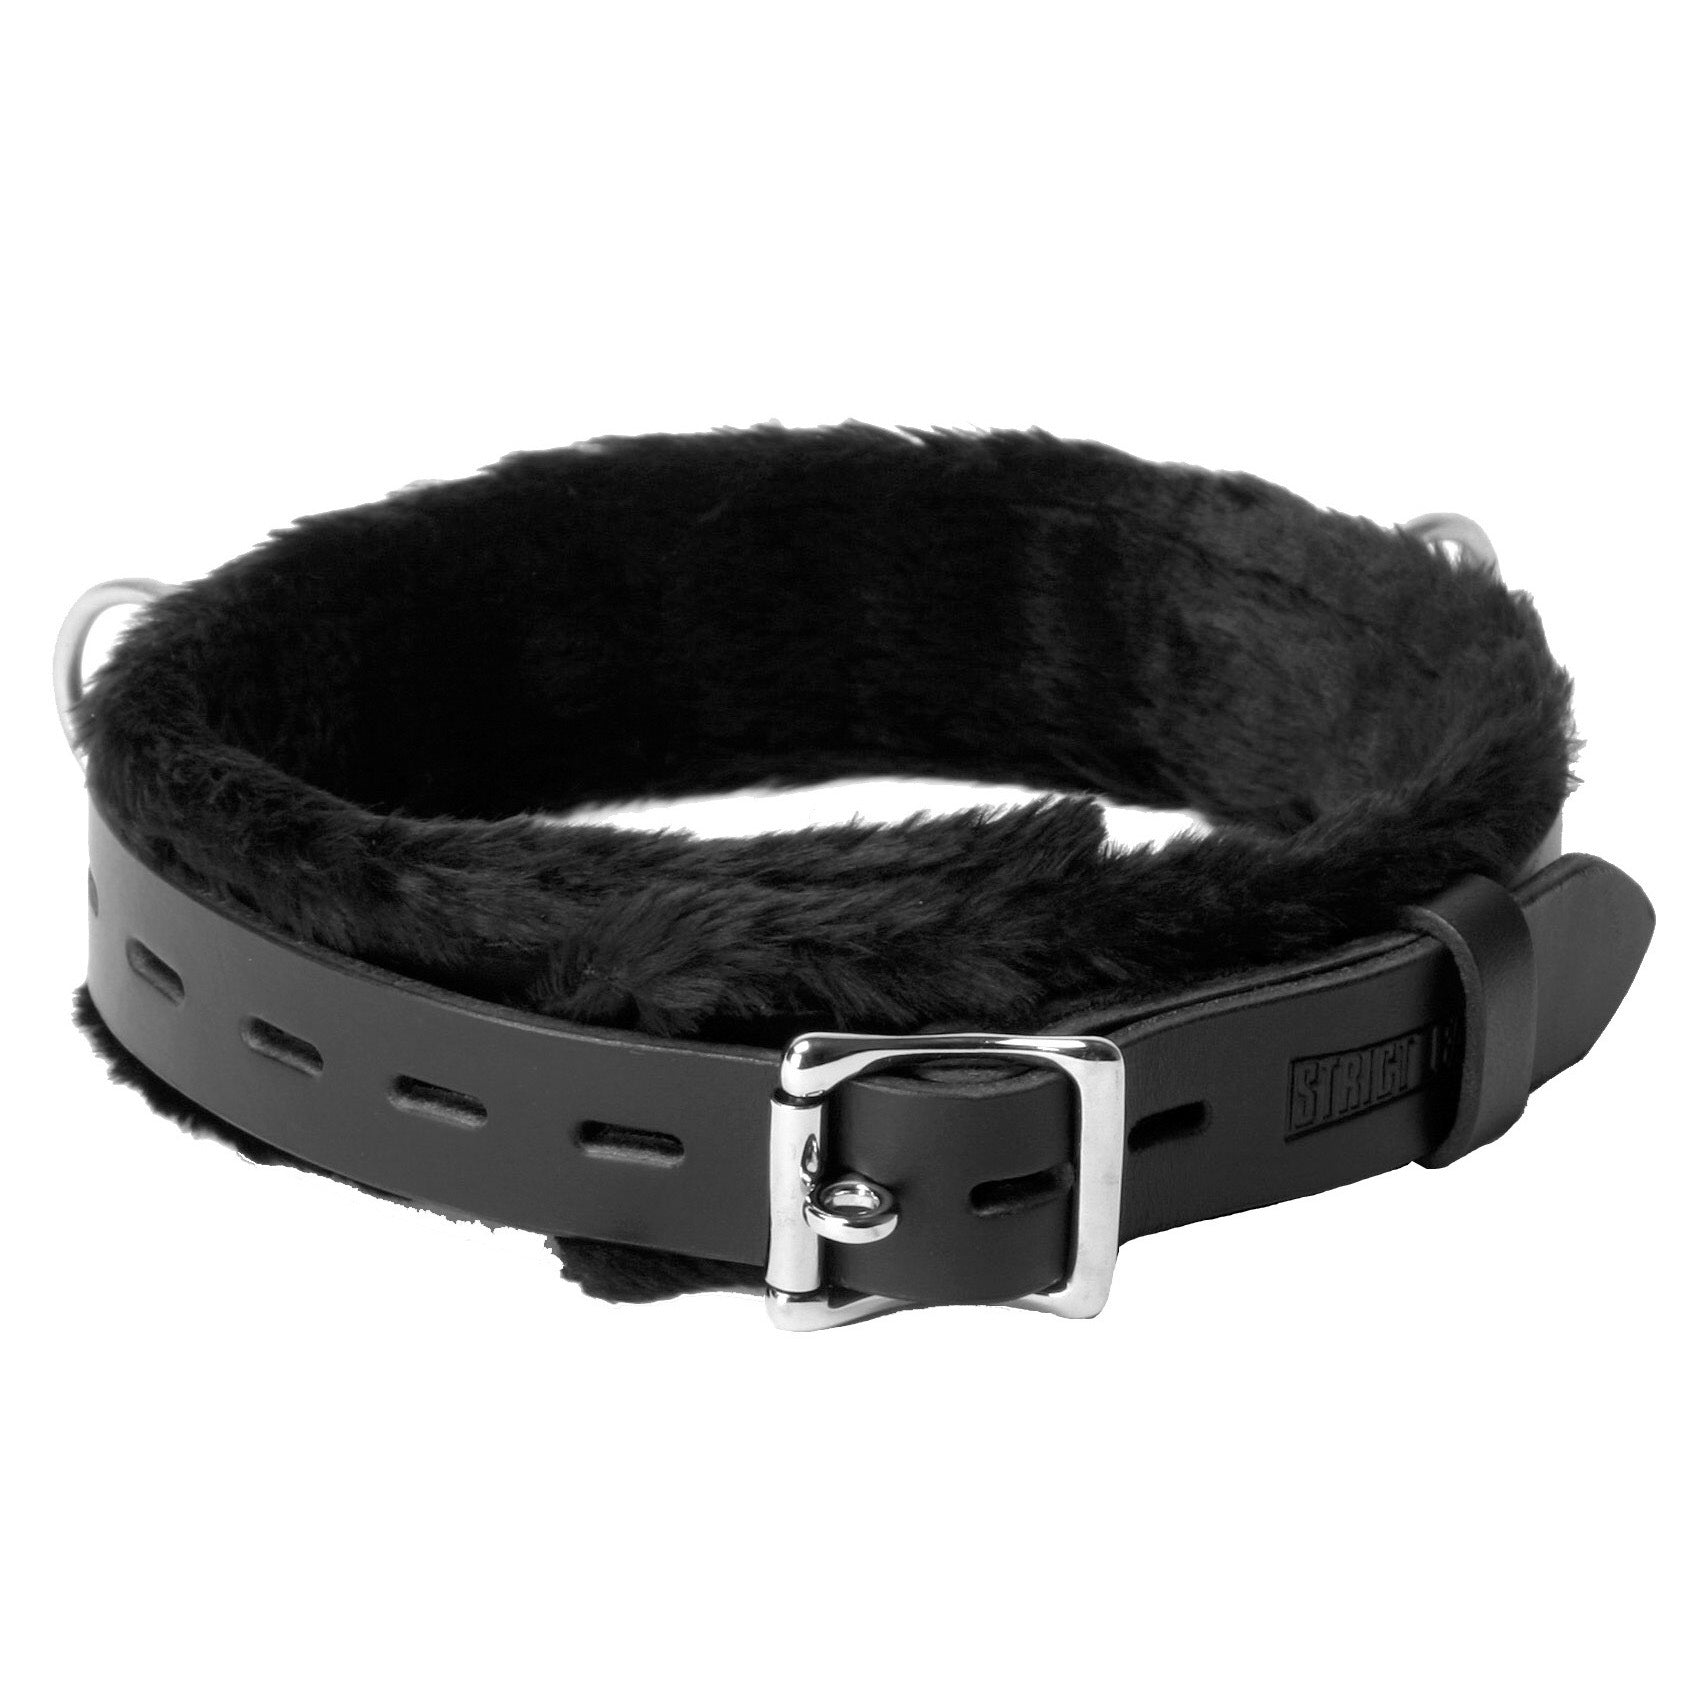 Strict Leather Narrow Fur Lined Locking Collar